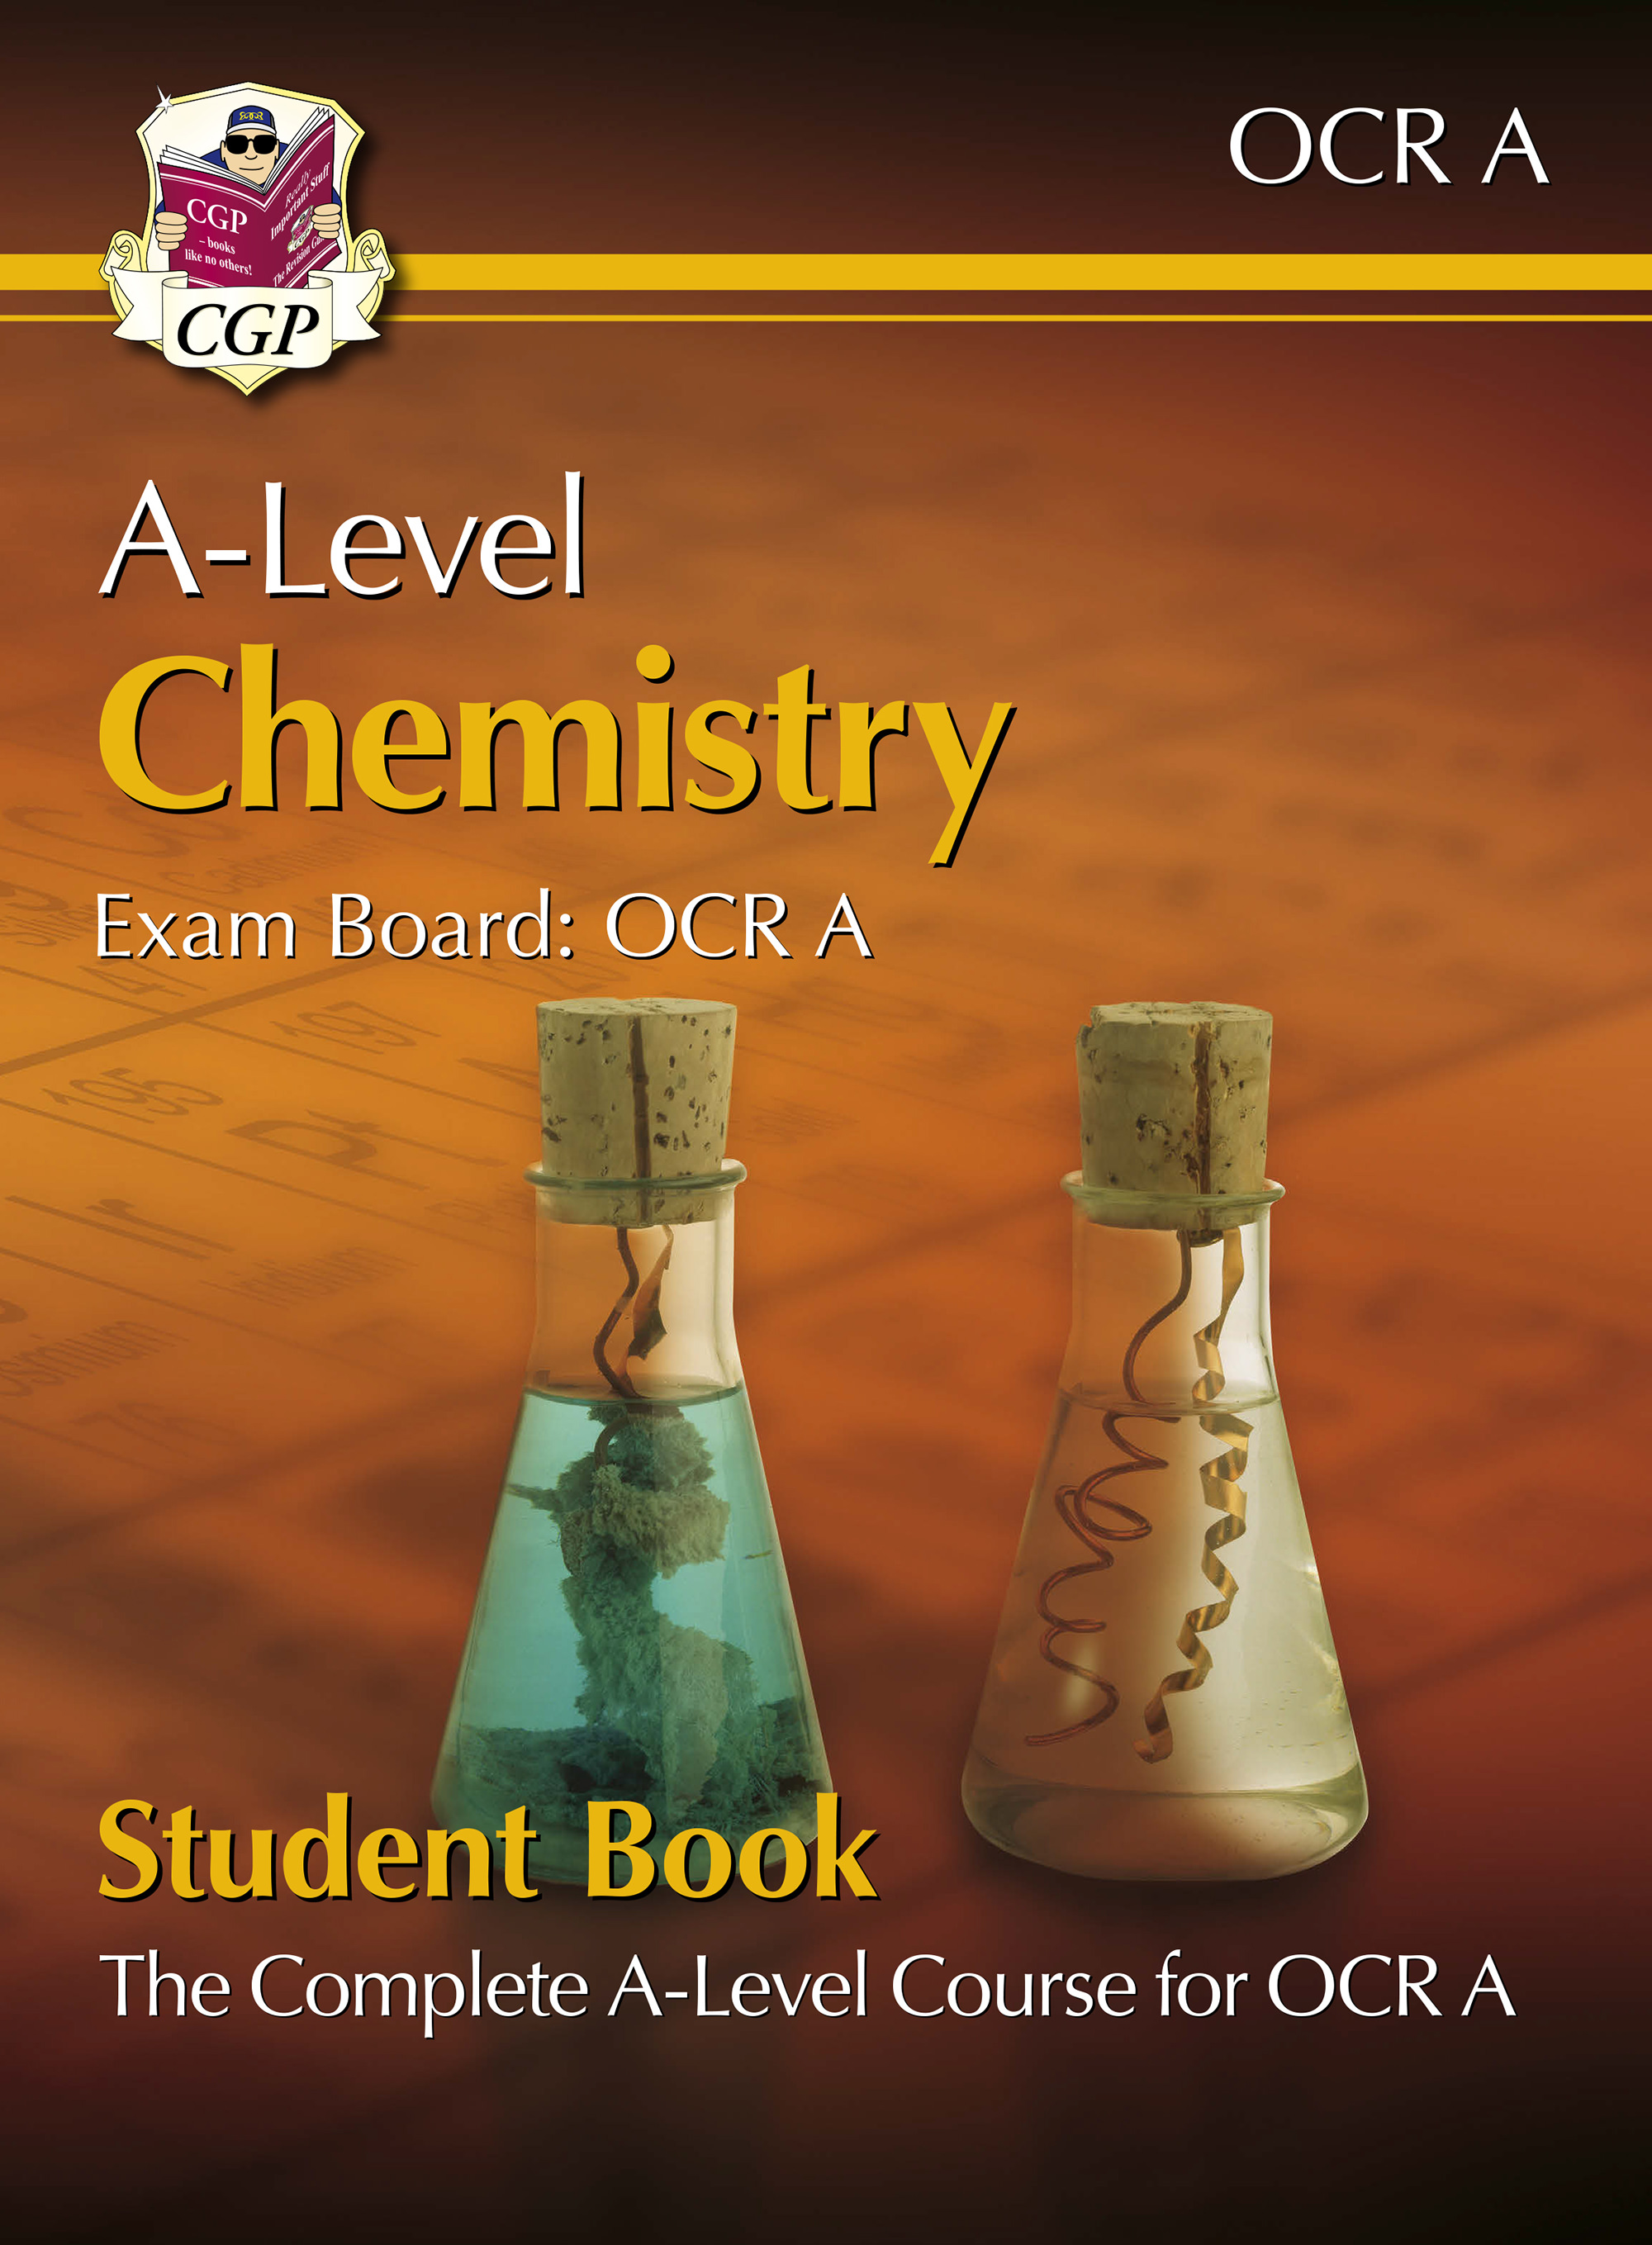 PRATB72DK - New A-Level Physics for OCR A: Year 1 & 2 Student Book